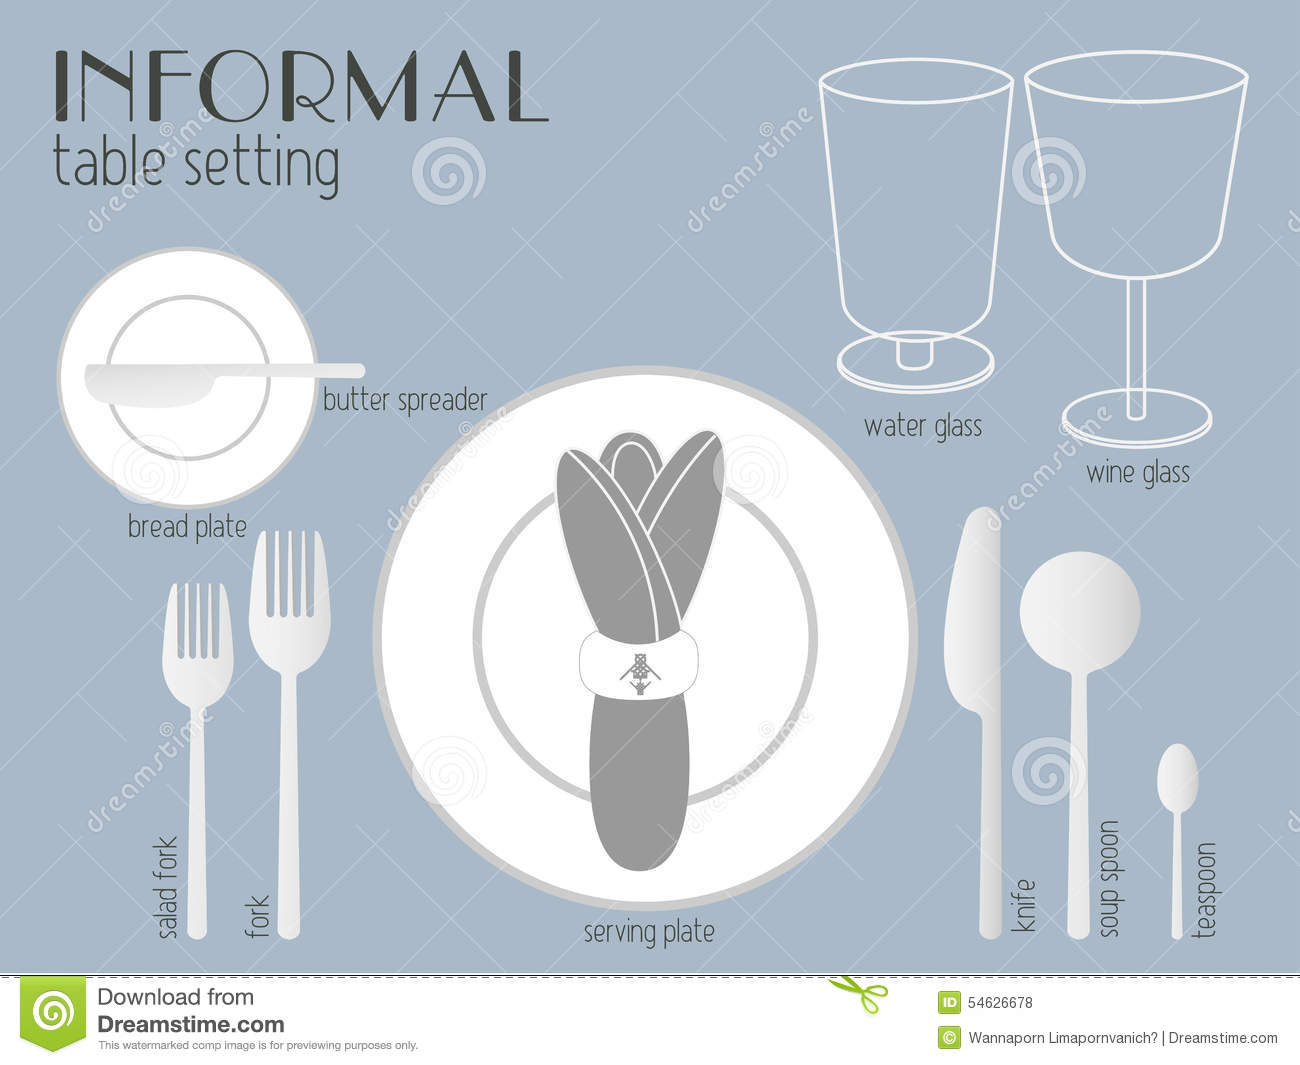 Exceptionnel INFORMAL TABLE SETTING